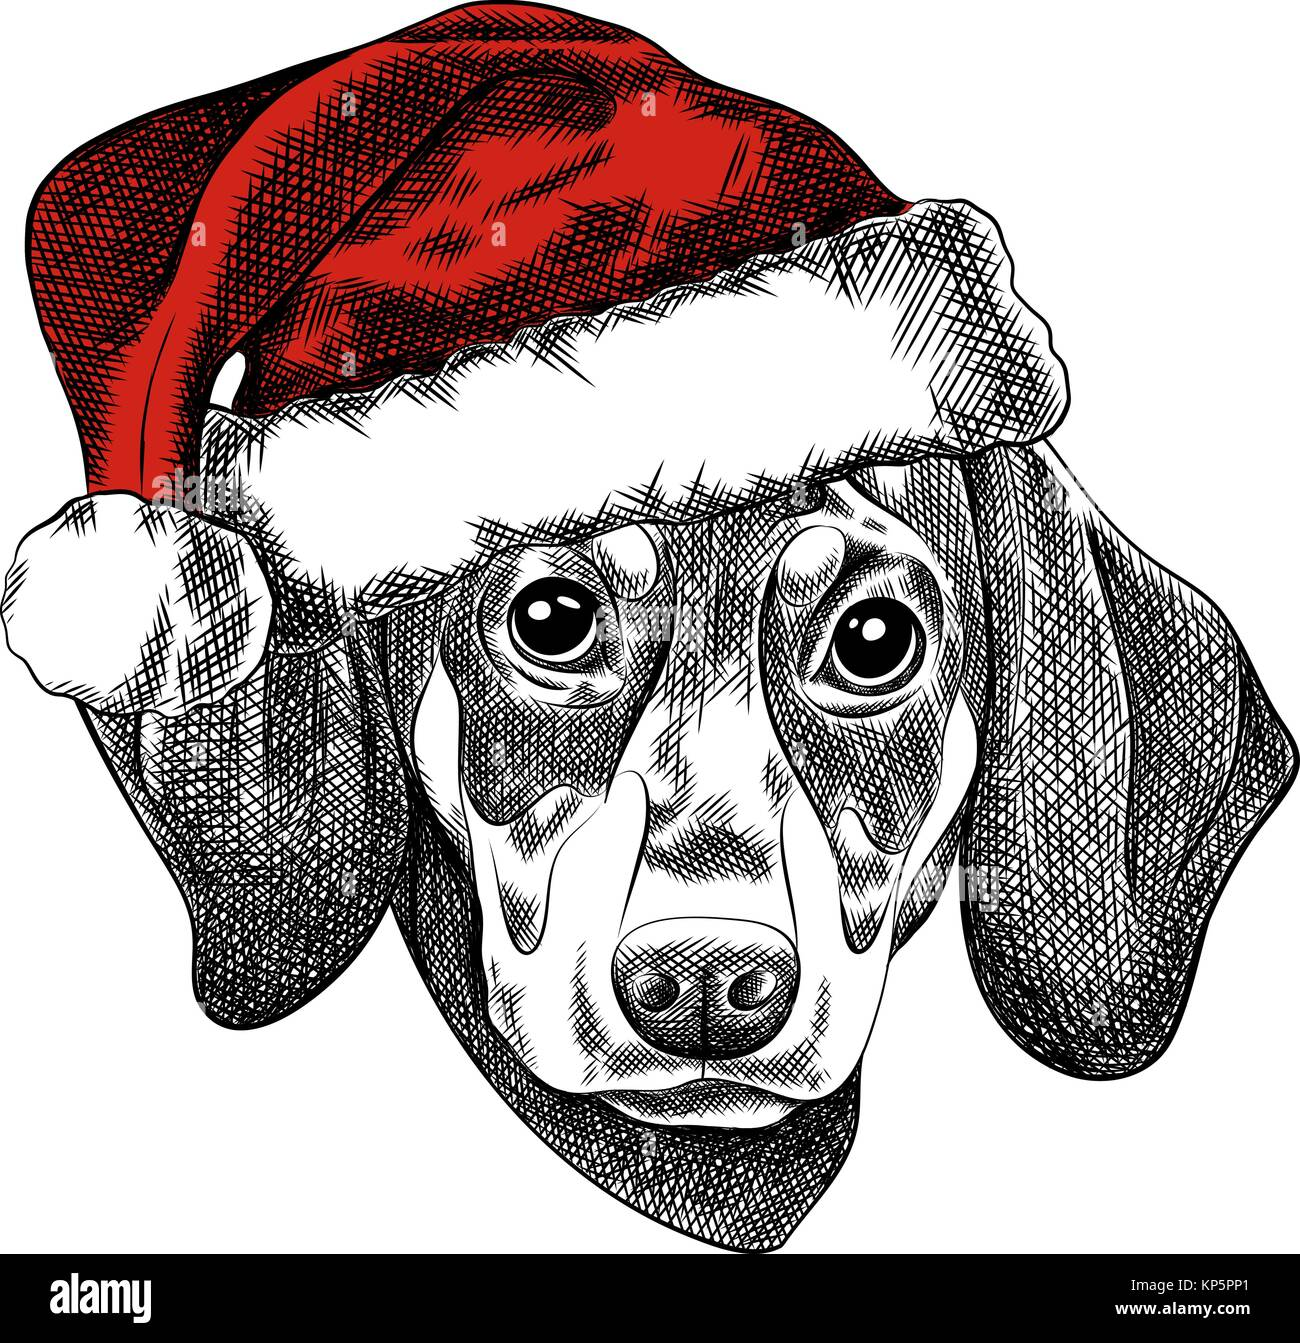 Vector illustration of a Dachshund dog for a Christmas card. Dachshund in the red cap of Santa Claus. - Stock Image